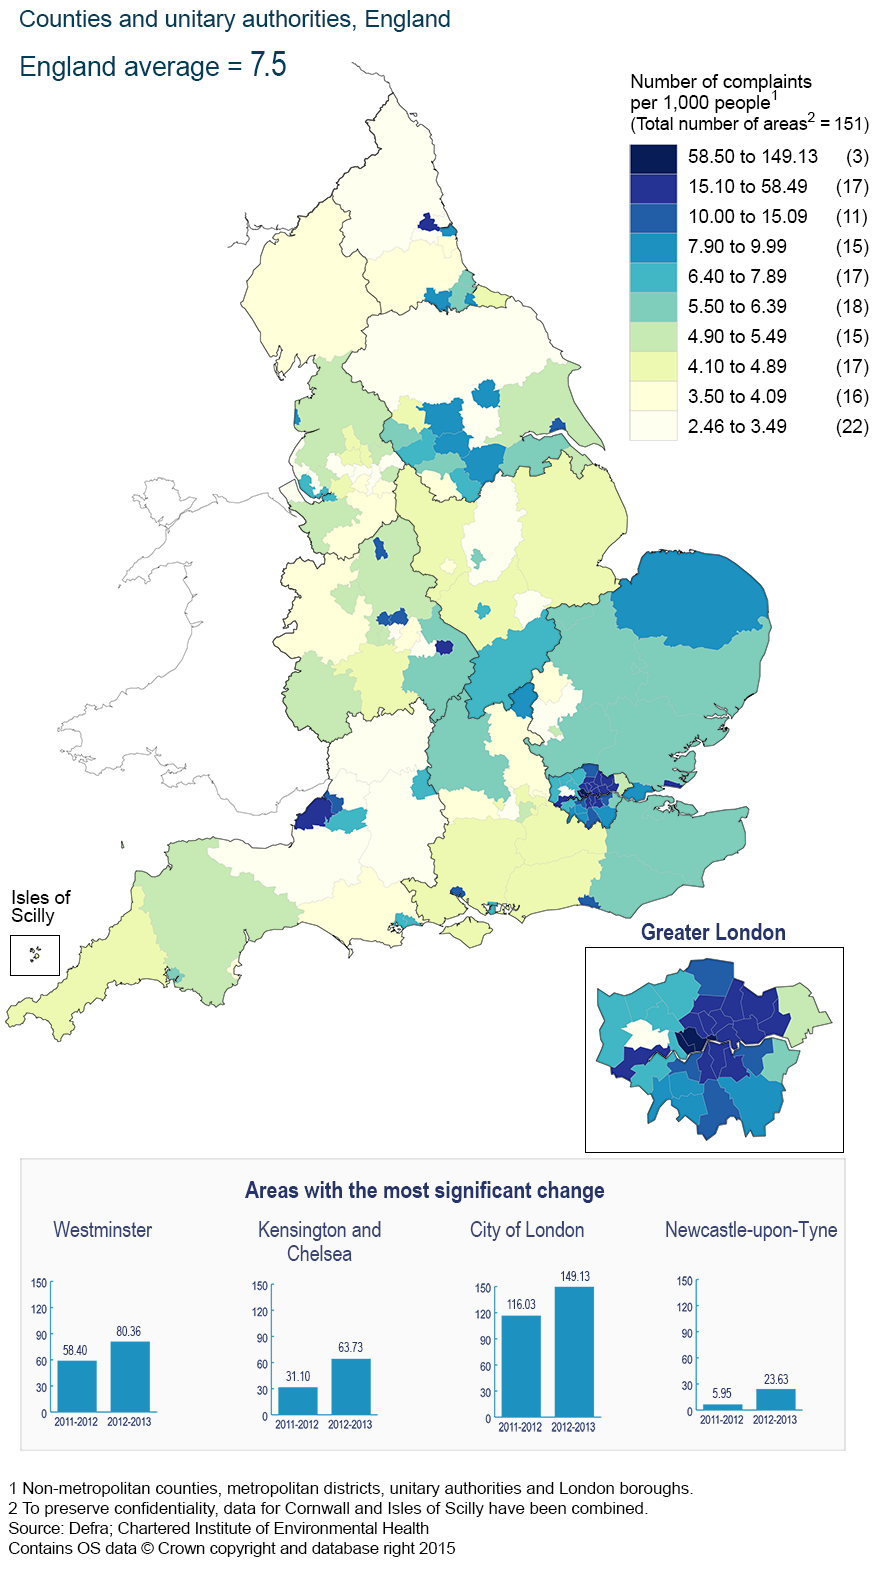 Figure 20.2 Number of complaints per 1,000 people by counties and unitary authorities, 2012–13 (1,2)